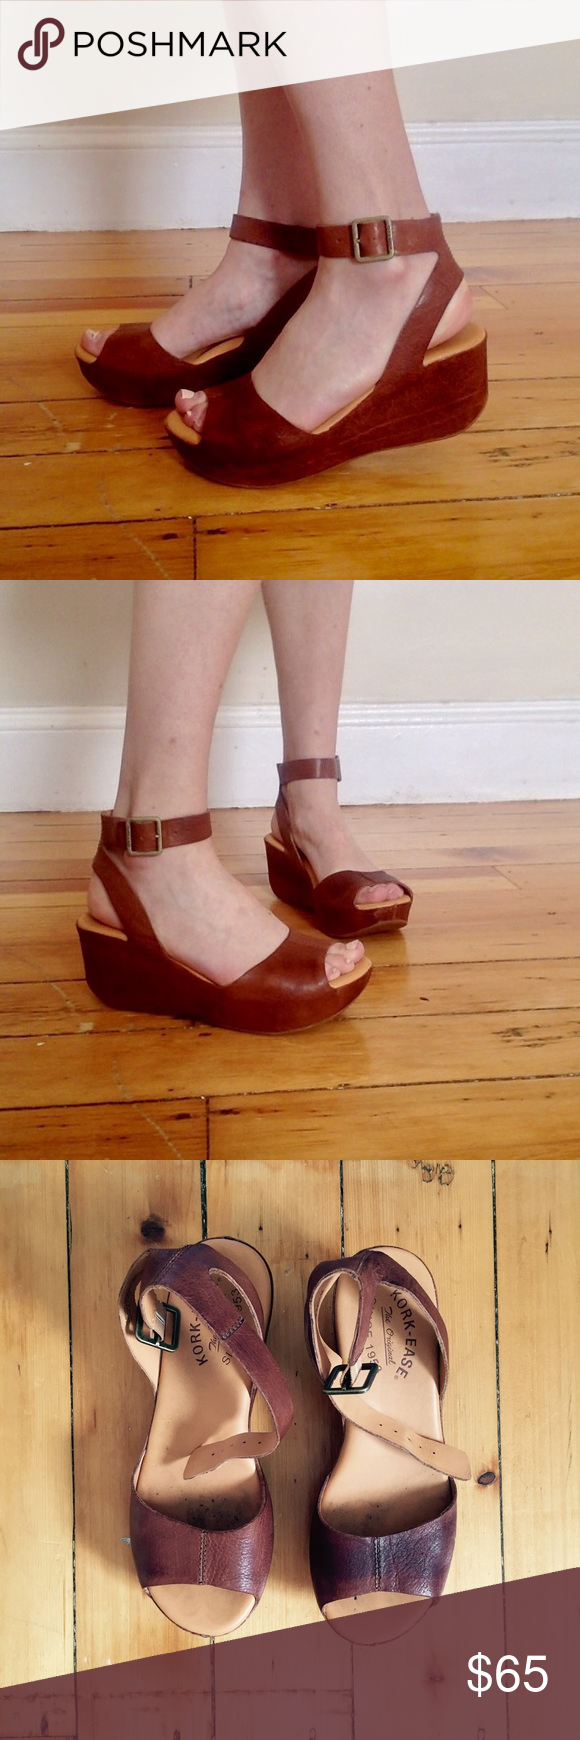 8a1ff072117 Kork-Ease Carolyne Platform Wedge Sandals in Rust Leather platform wedge  sandals in rich brown from Kork-Ease. They look great with summer dresses  and ...